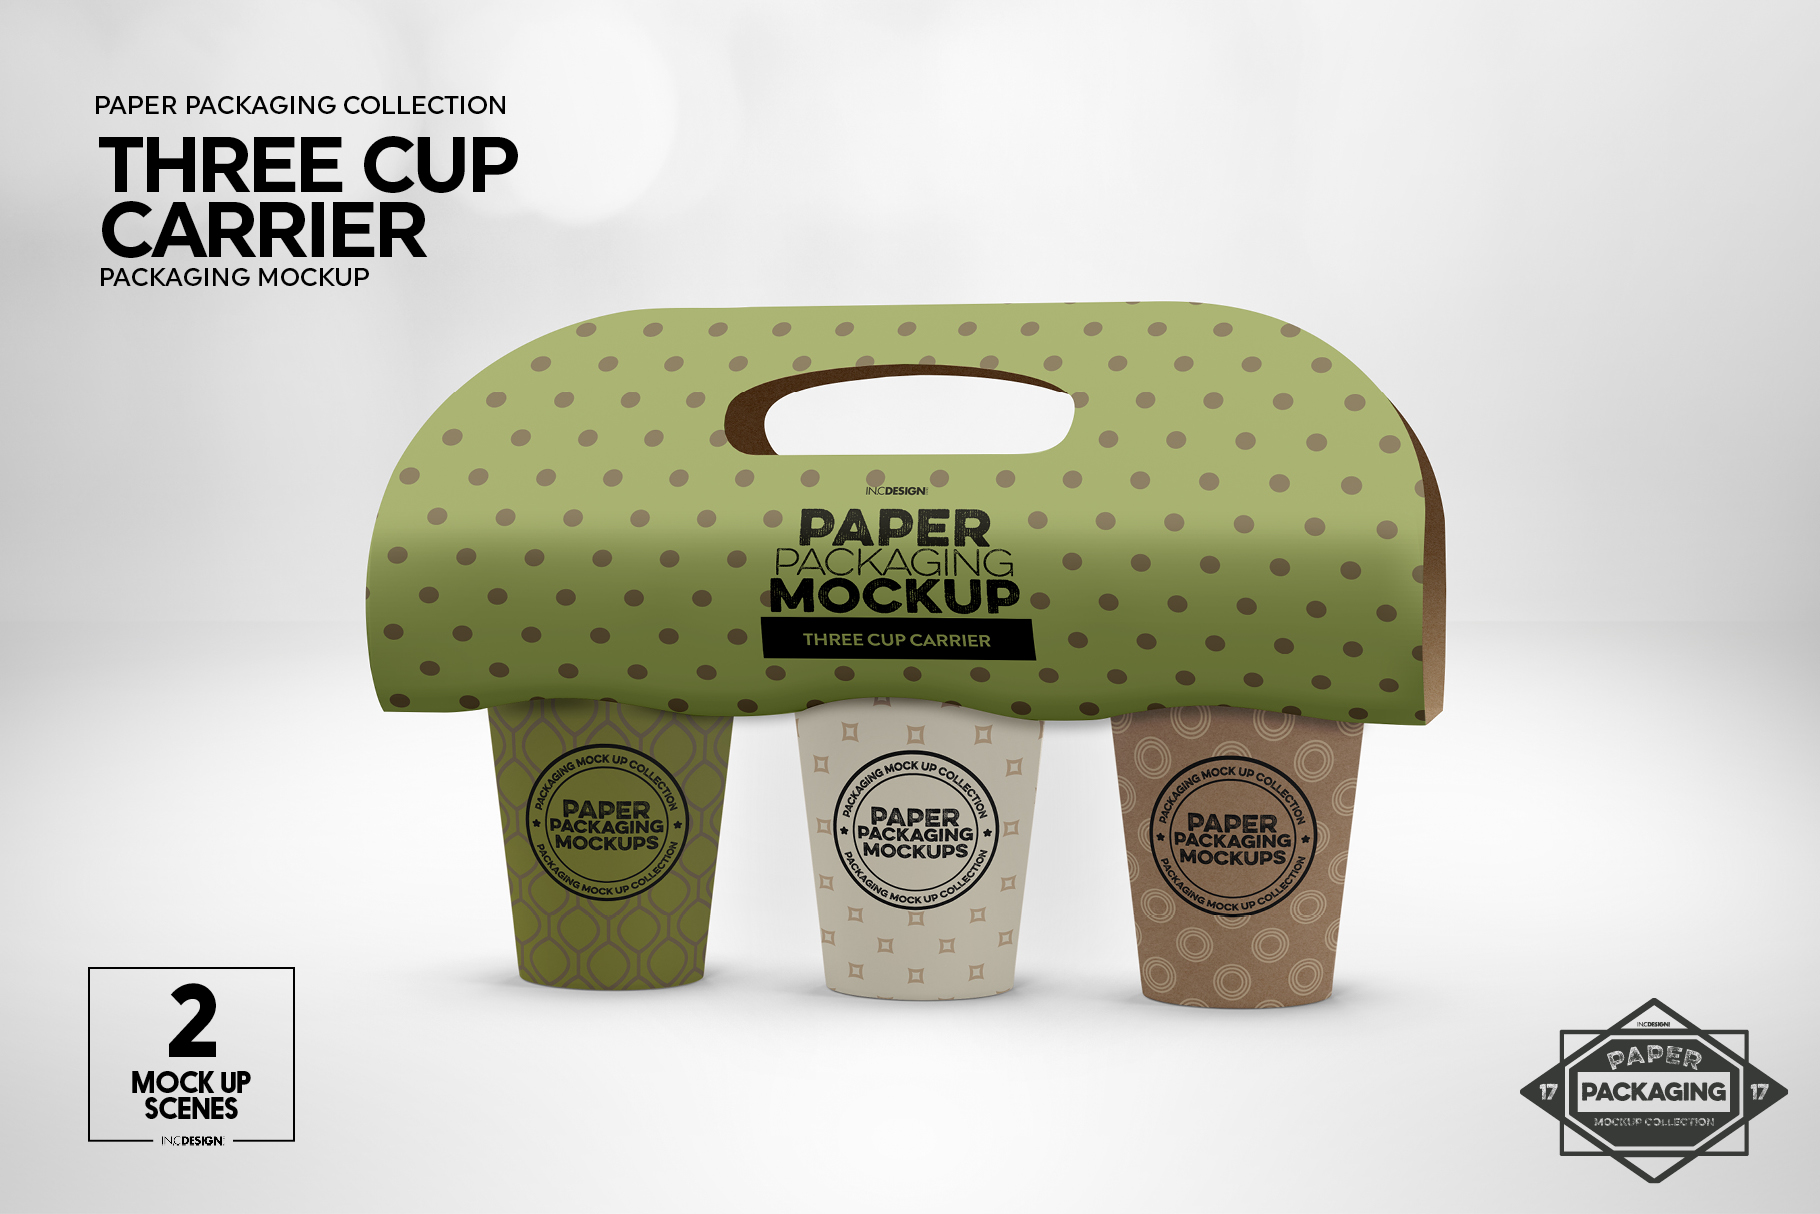 Three Cup Paper Carrier Packaging Mockup example image 2